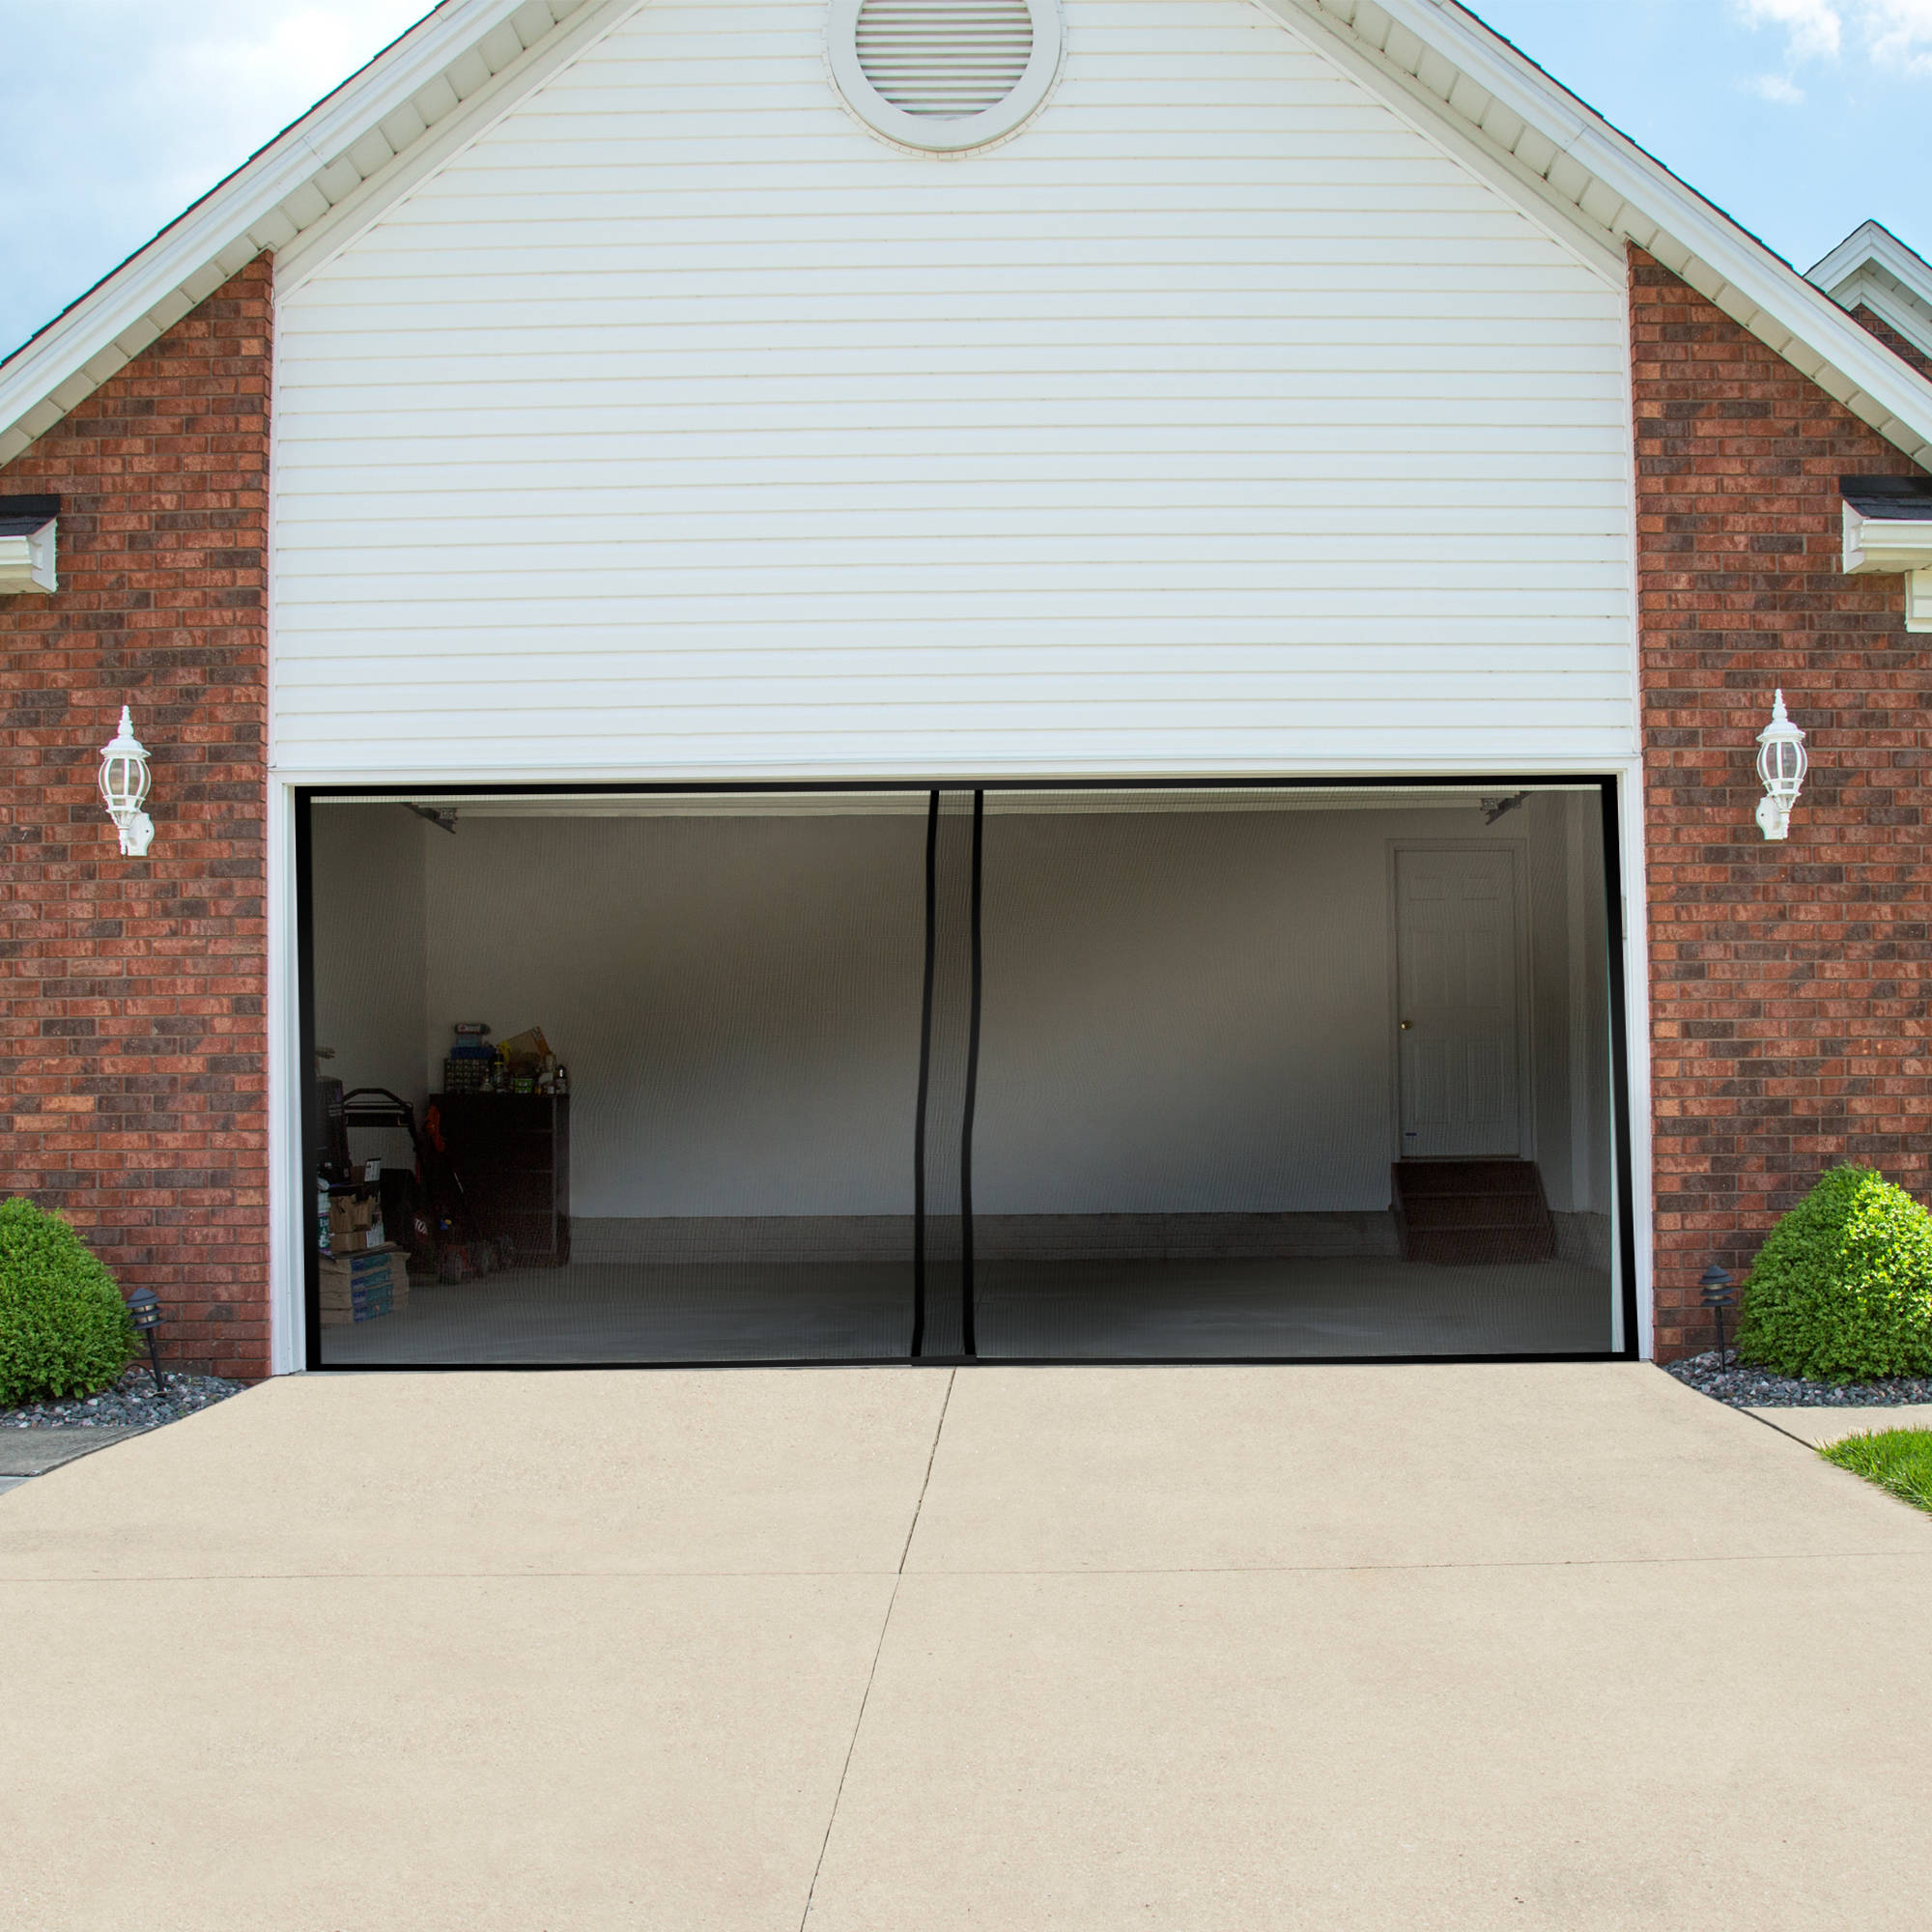 my doors using pin a screened do pinner screen idea room size i one car door in then framed garage to carport basic turned the trimmed